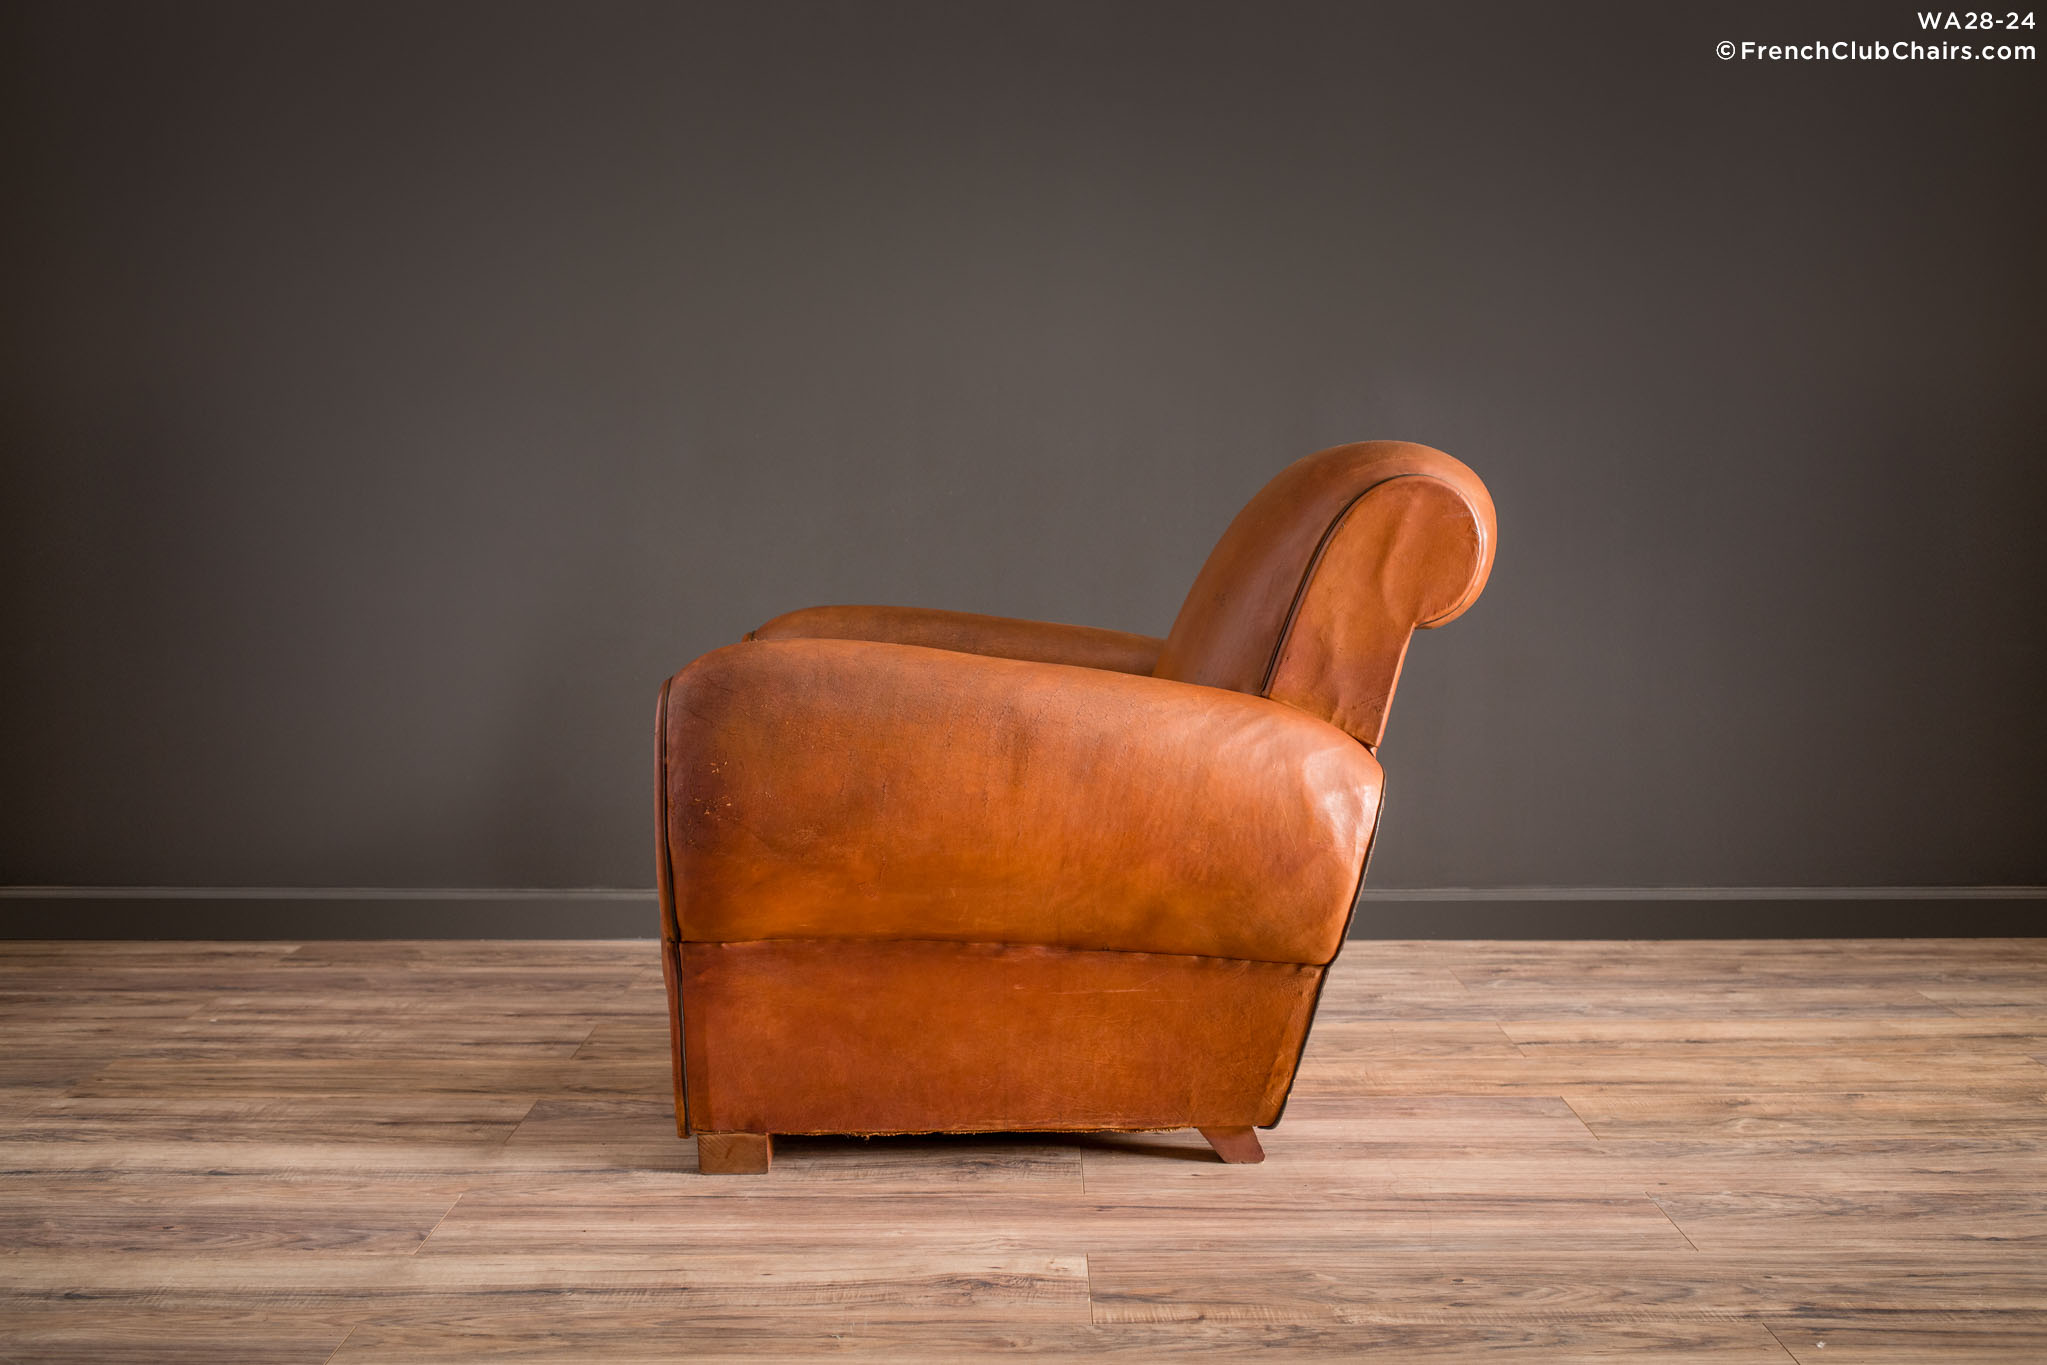 WA_28-24_Nantes_Cognac_Rollback_Solo_R_4LT1-williams-antiks-leather-french-club-chair-wa_fcccom